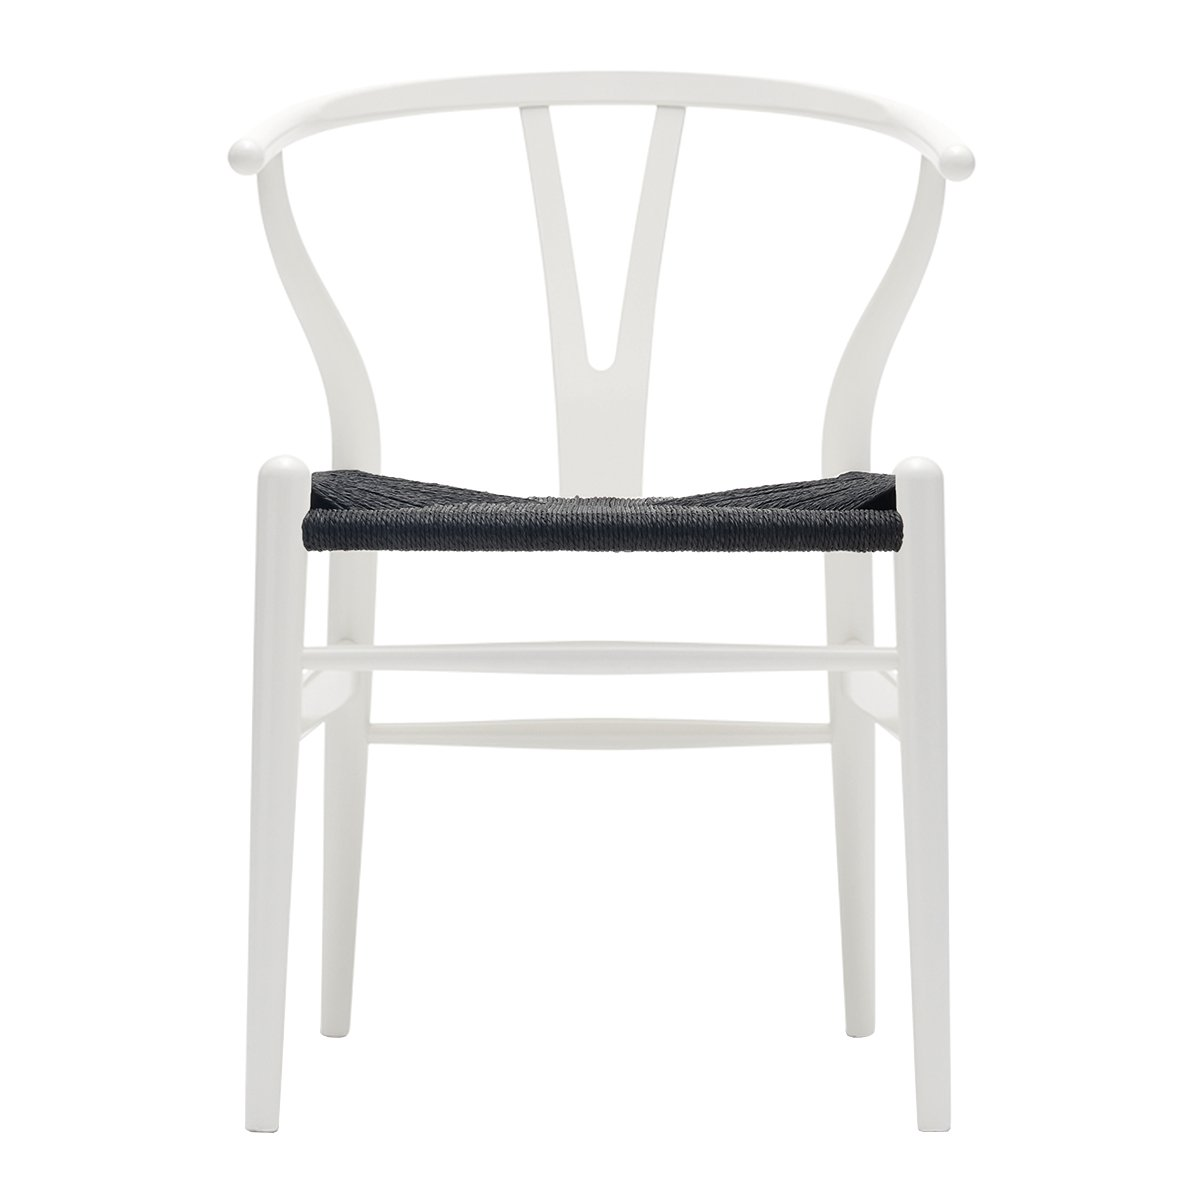 Carl Hansen Wishbone Chair NCS S0502-Y - Zwart